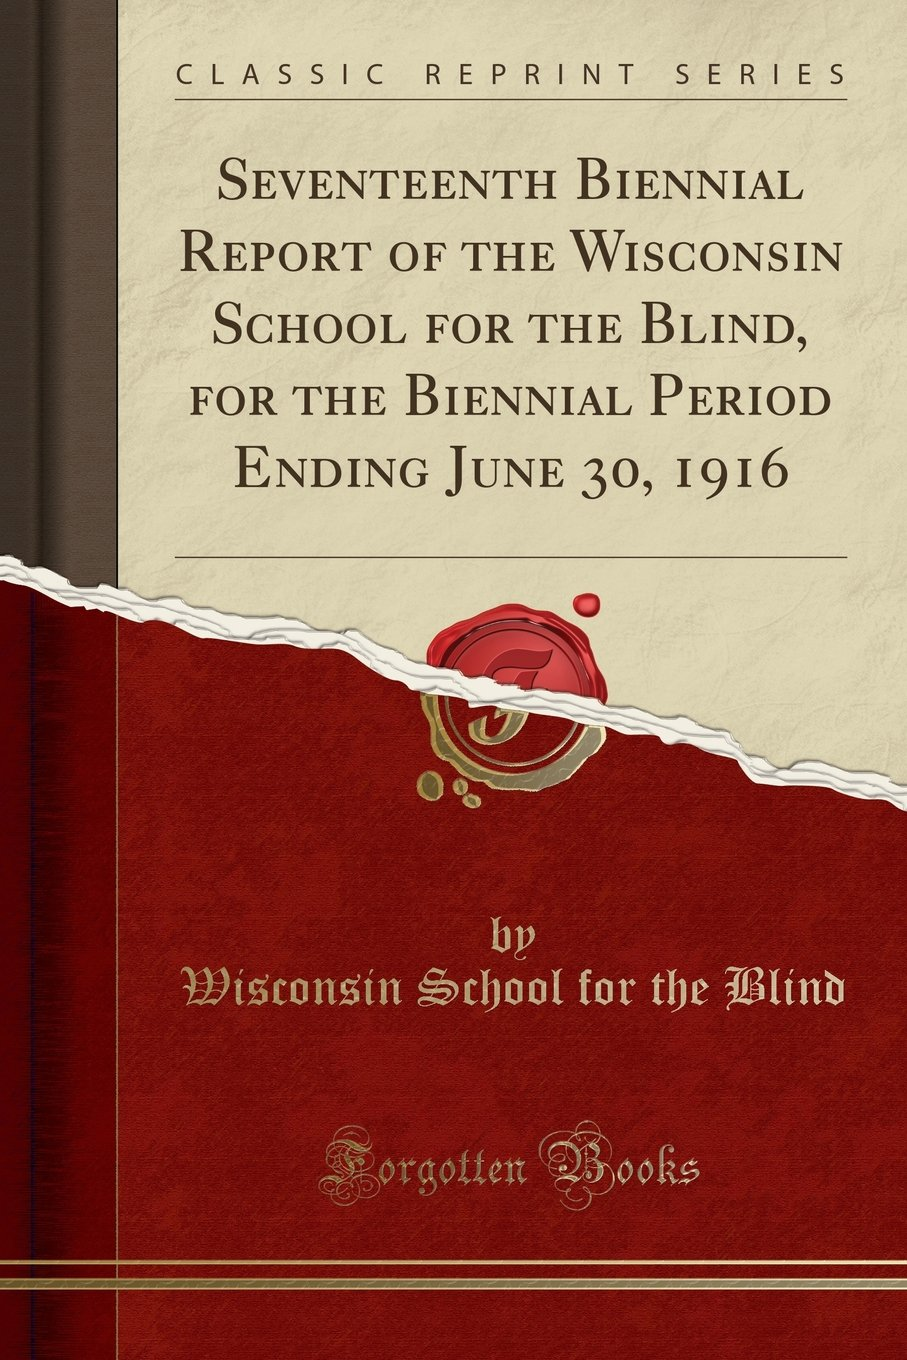 Download Seventeenth Biennial Report of the Wisconsin School for the Blind, for the Biennial Period Ending June 30, 1916 (Classic Reprint) pdf epub